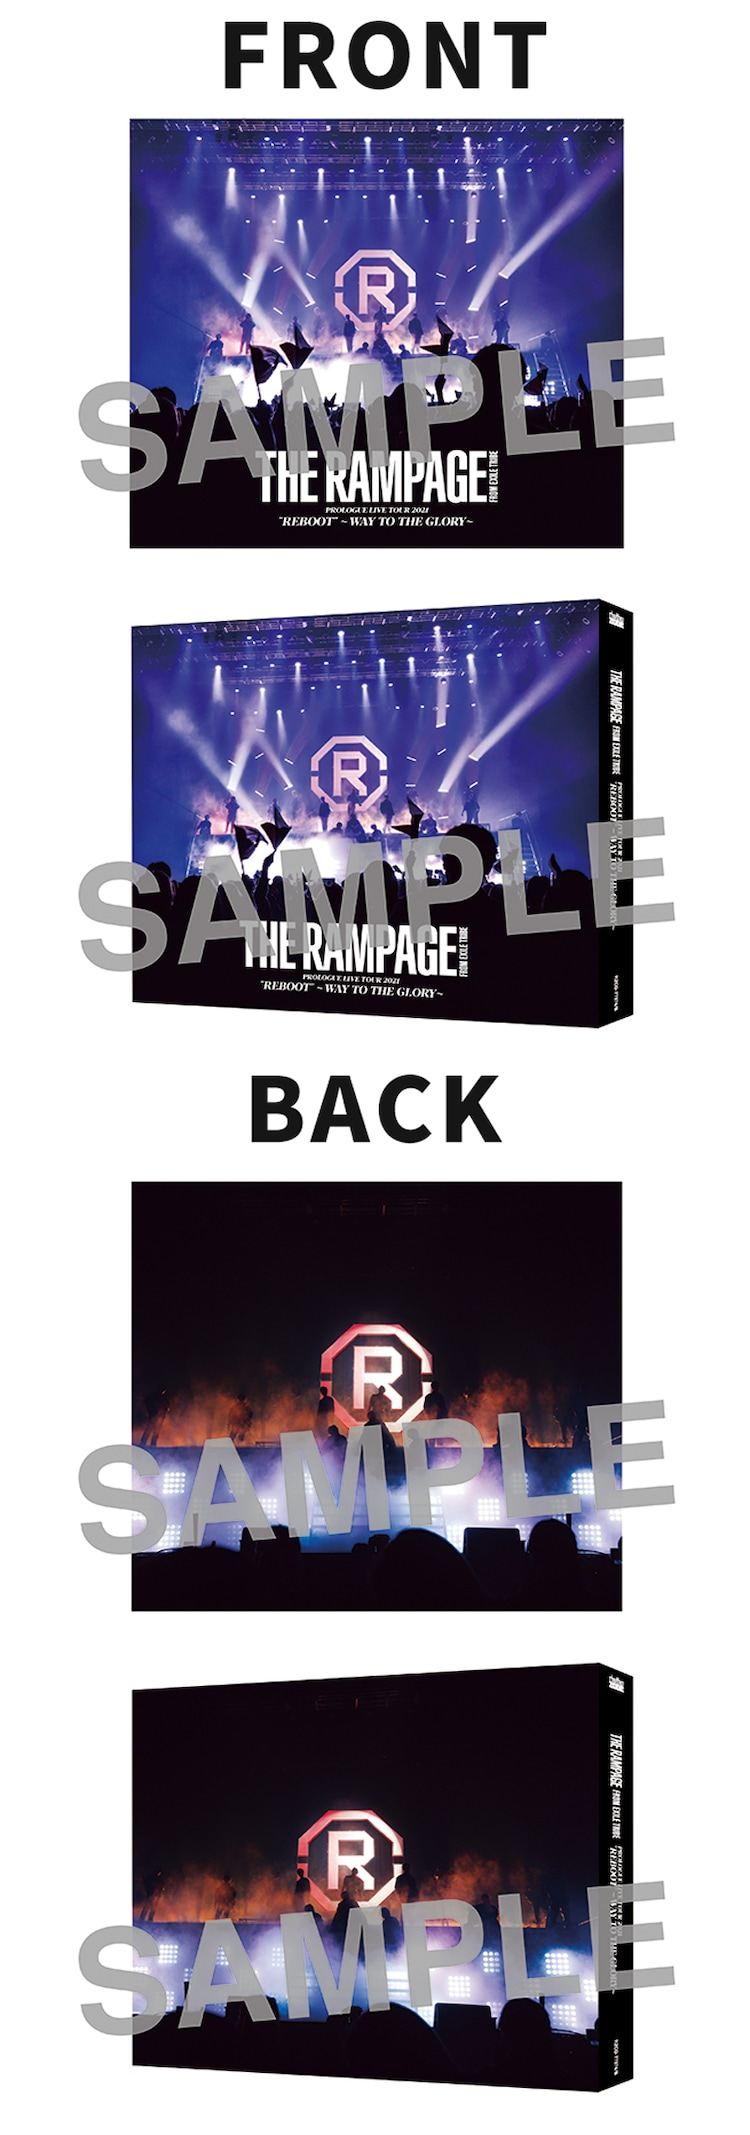 THE RAMPAGE from EXILE TRIBE「HEATWAVE」CD+DVDのEXILE TRIBE FAMILY OFFICIAL CD・DVD SHOP、LDH official mobile CD/DVD SHOP購入者特典ライブフォトスリーブケースのデザイン。